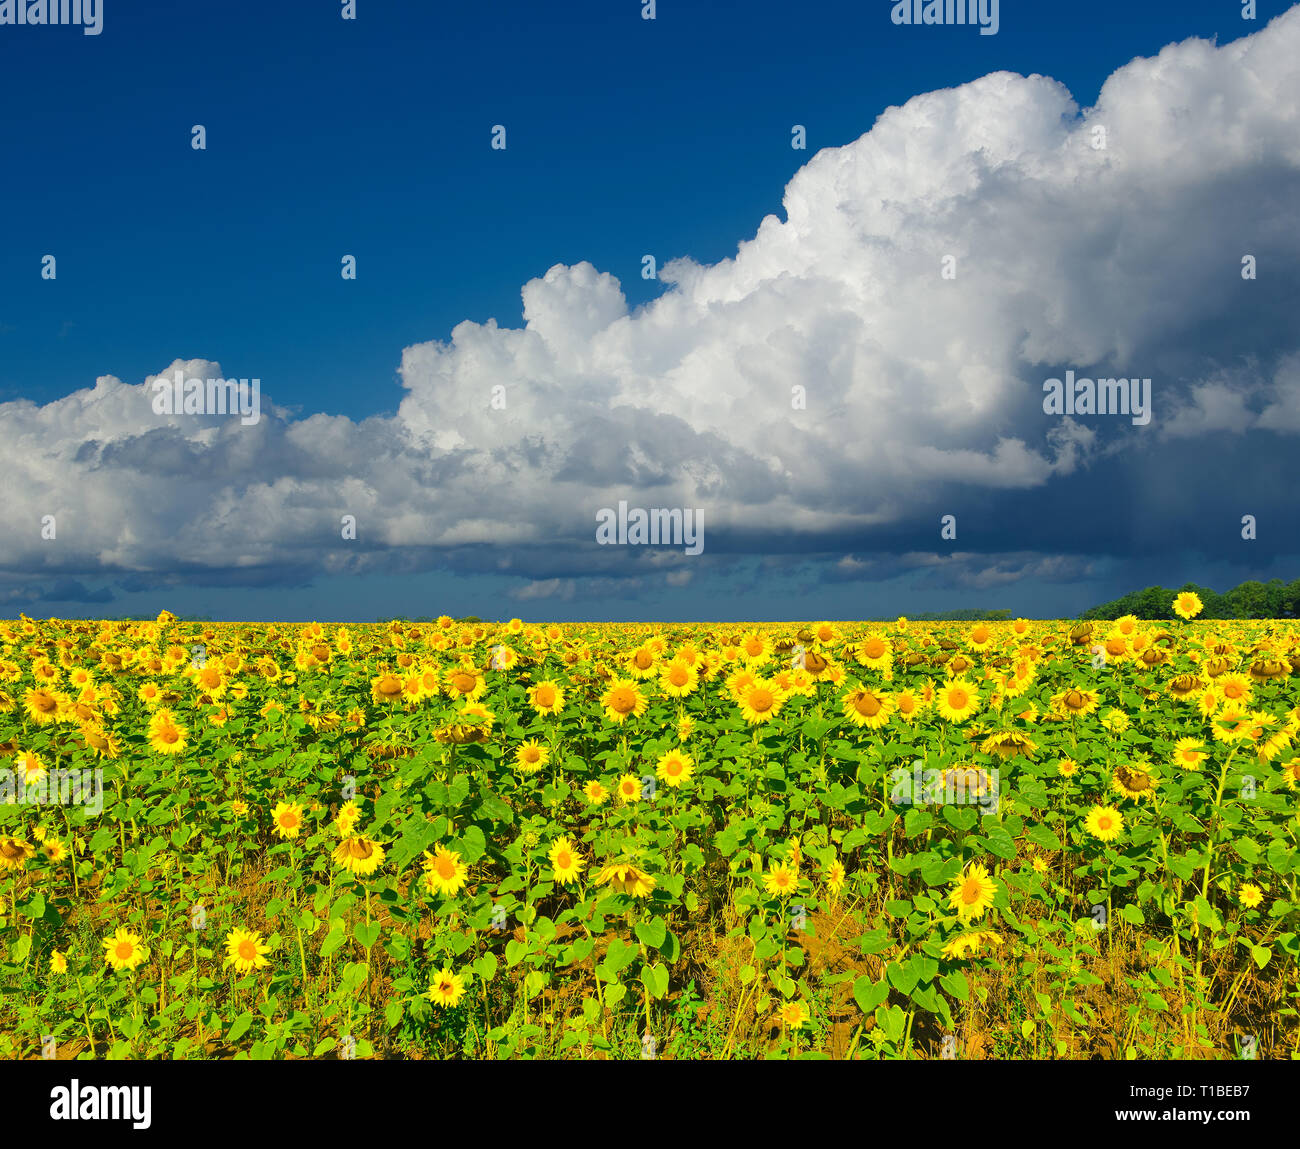 View of sunflower field in summer countryside.Rural landscape with cultivated plant and squall line - Stock Image